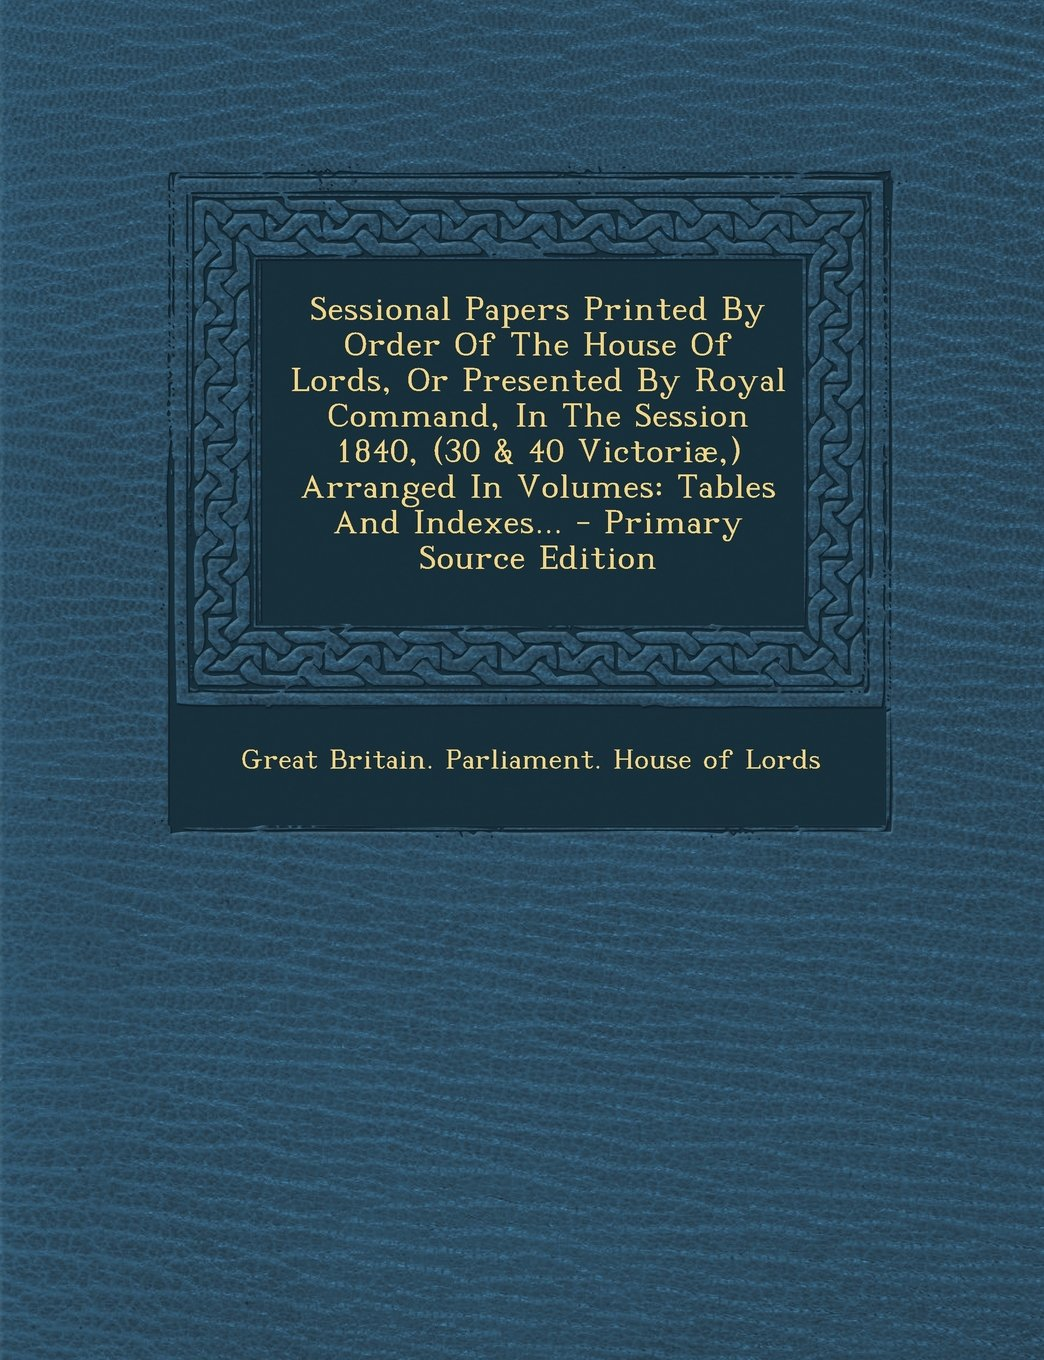 Download Sessional Papers Printed By Order Of The House Of Lords, Or Presented By Royal Command, In The Session 1840, (30 & 40 Victoriæ,) Arranged In Volumes: Tables And Indexes... - Primary Source Edition PDF